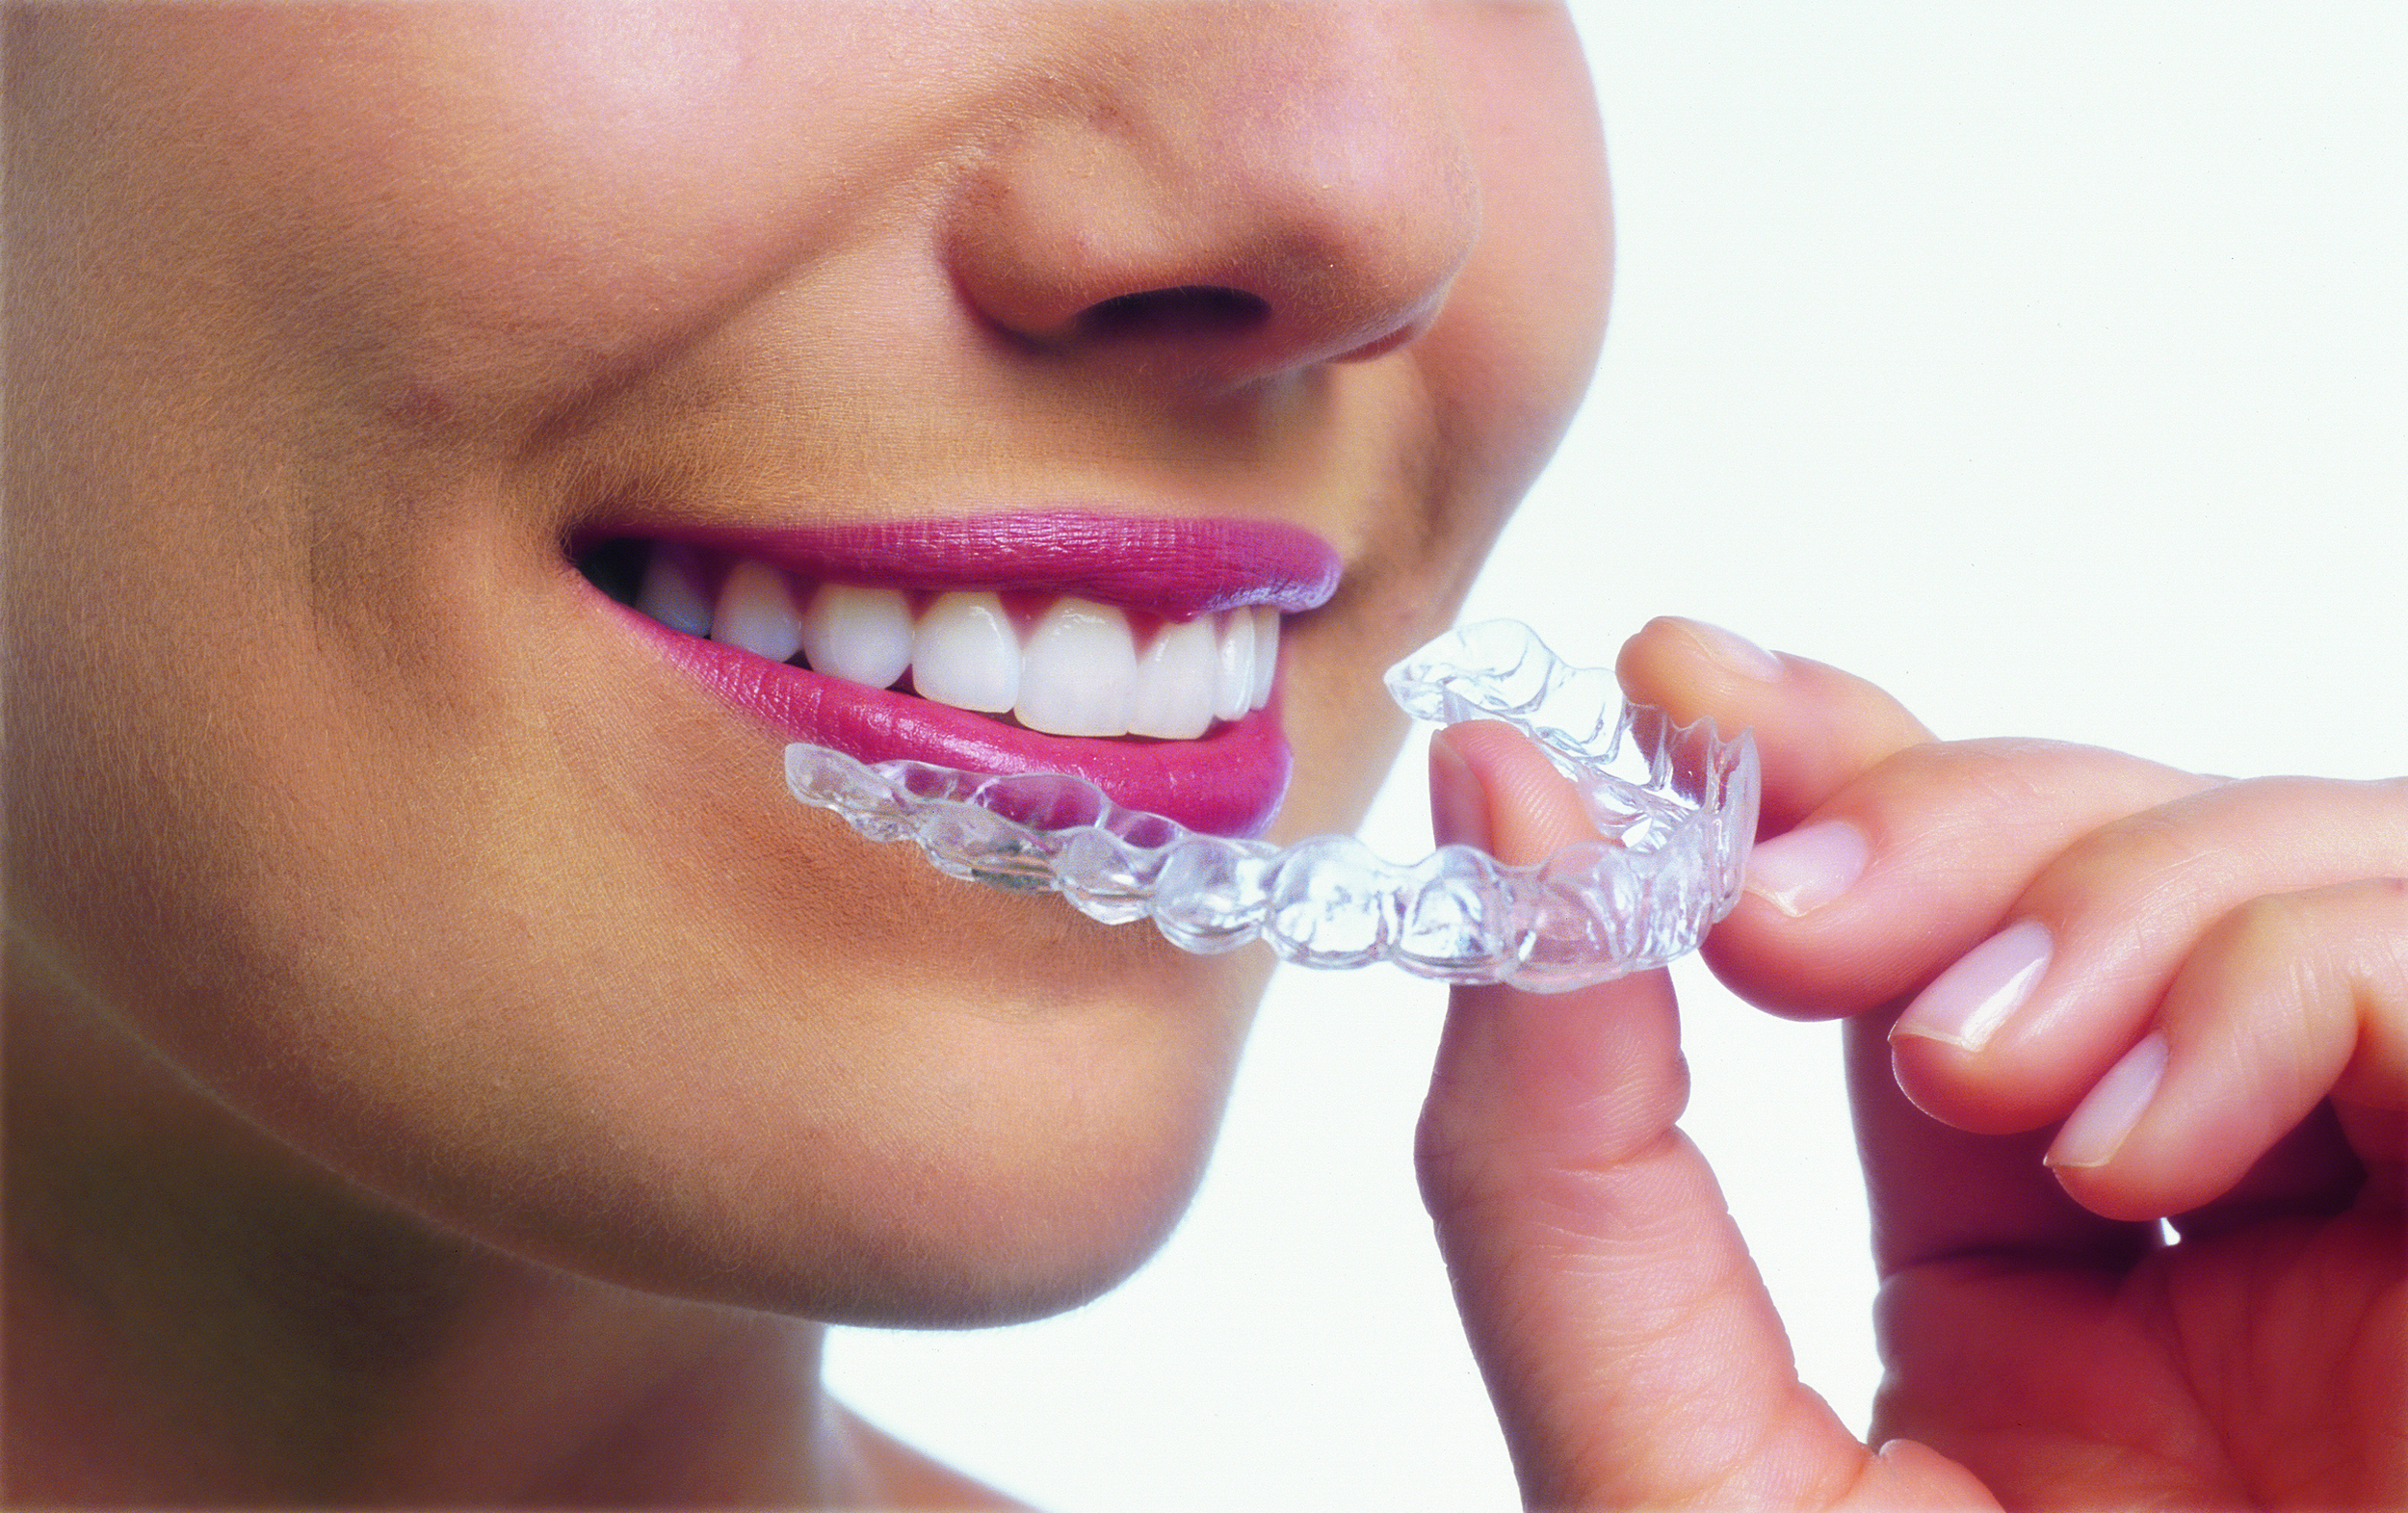 Invisalign aligner trays are made of smooth, comfortable and virtually invisible plastic that you wear over your teeth.